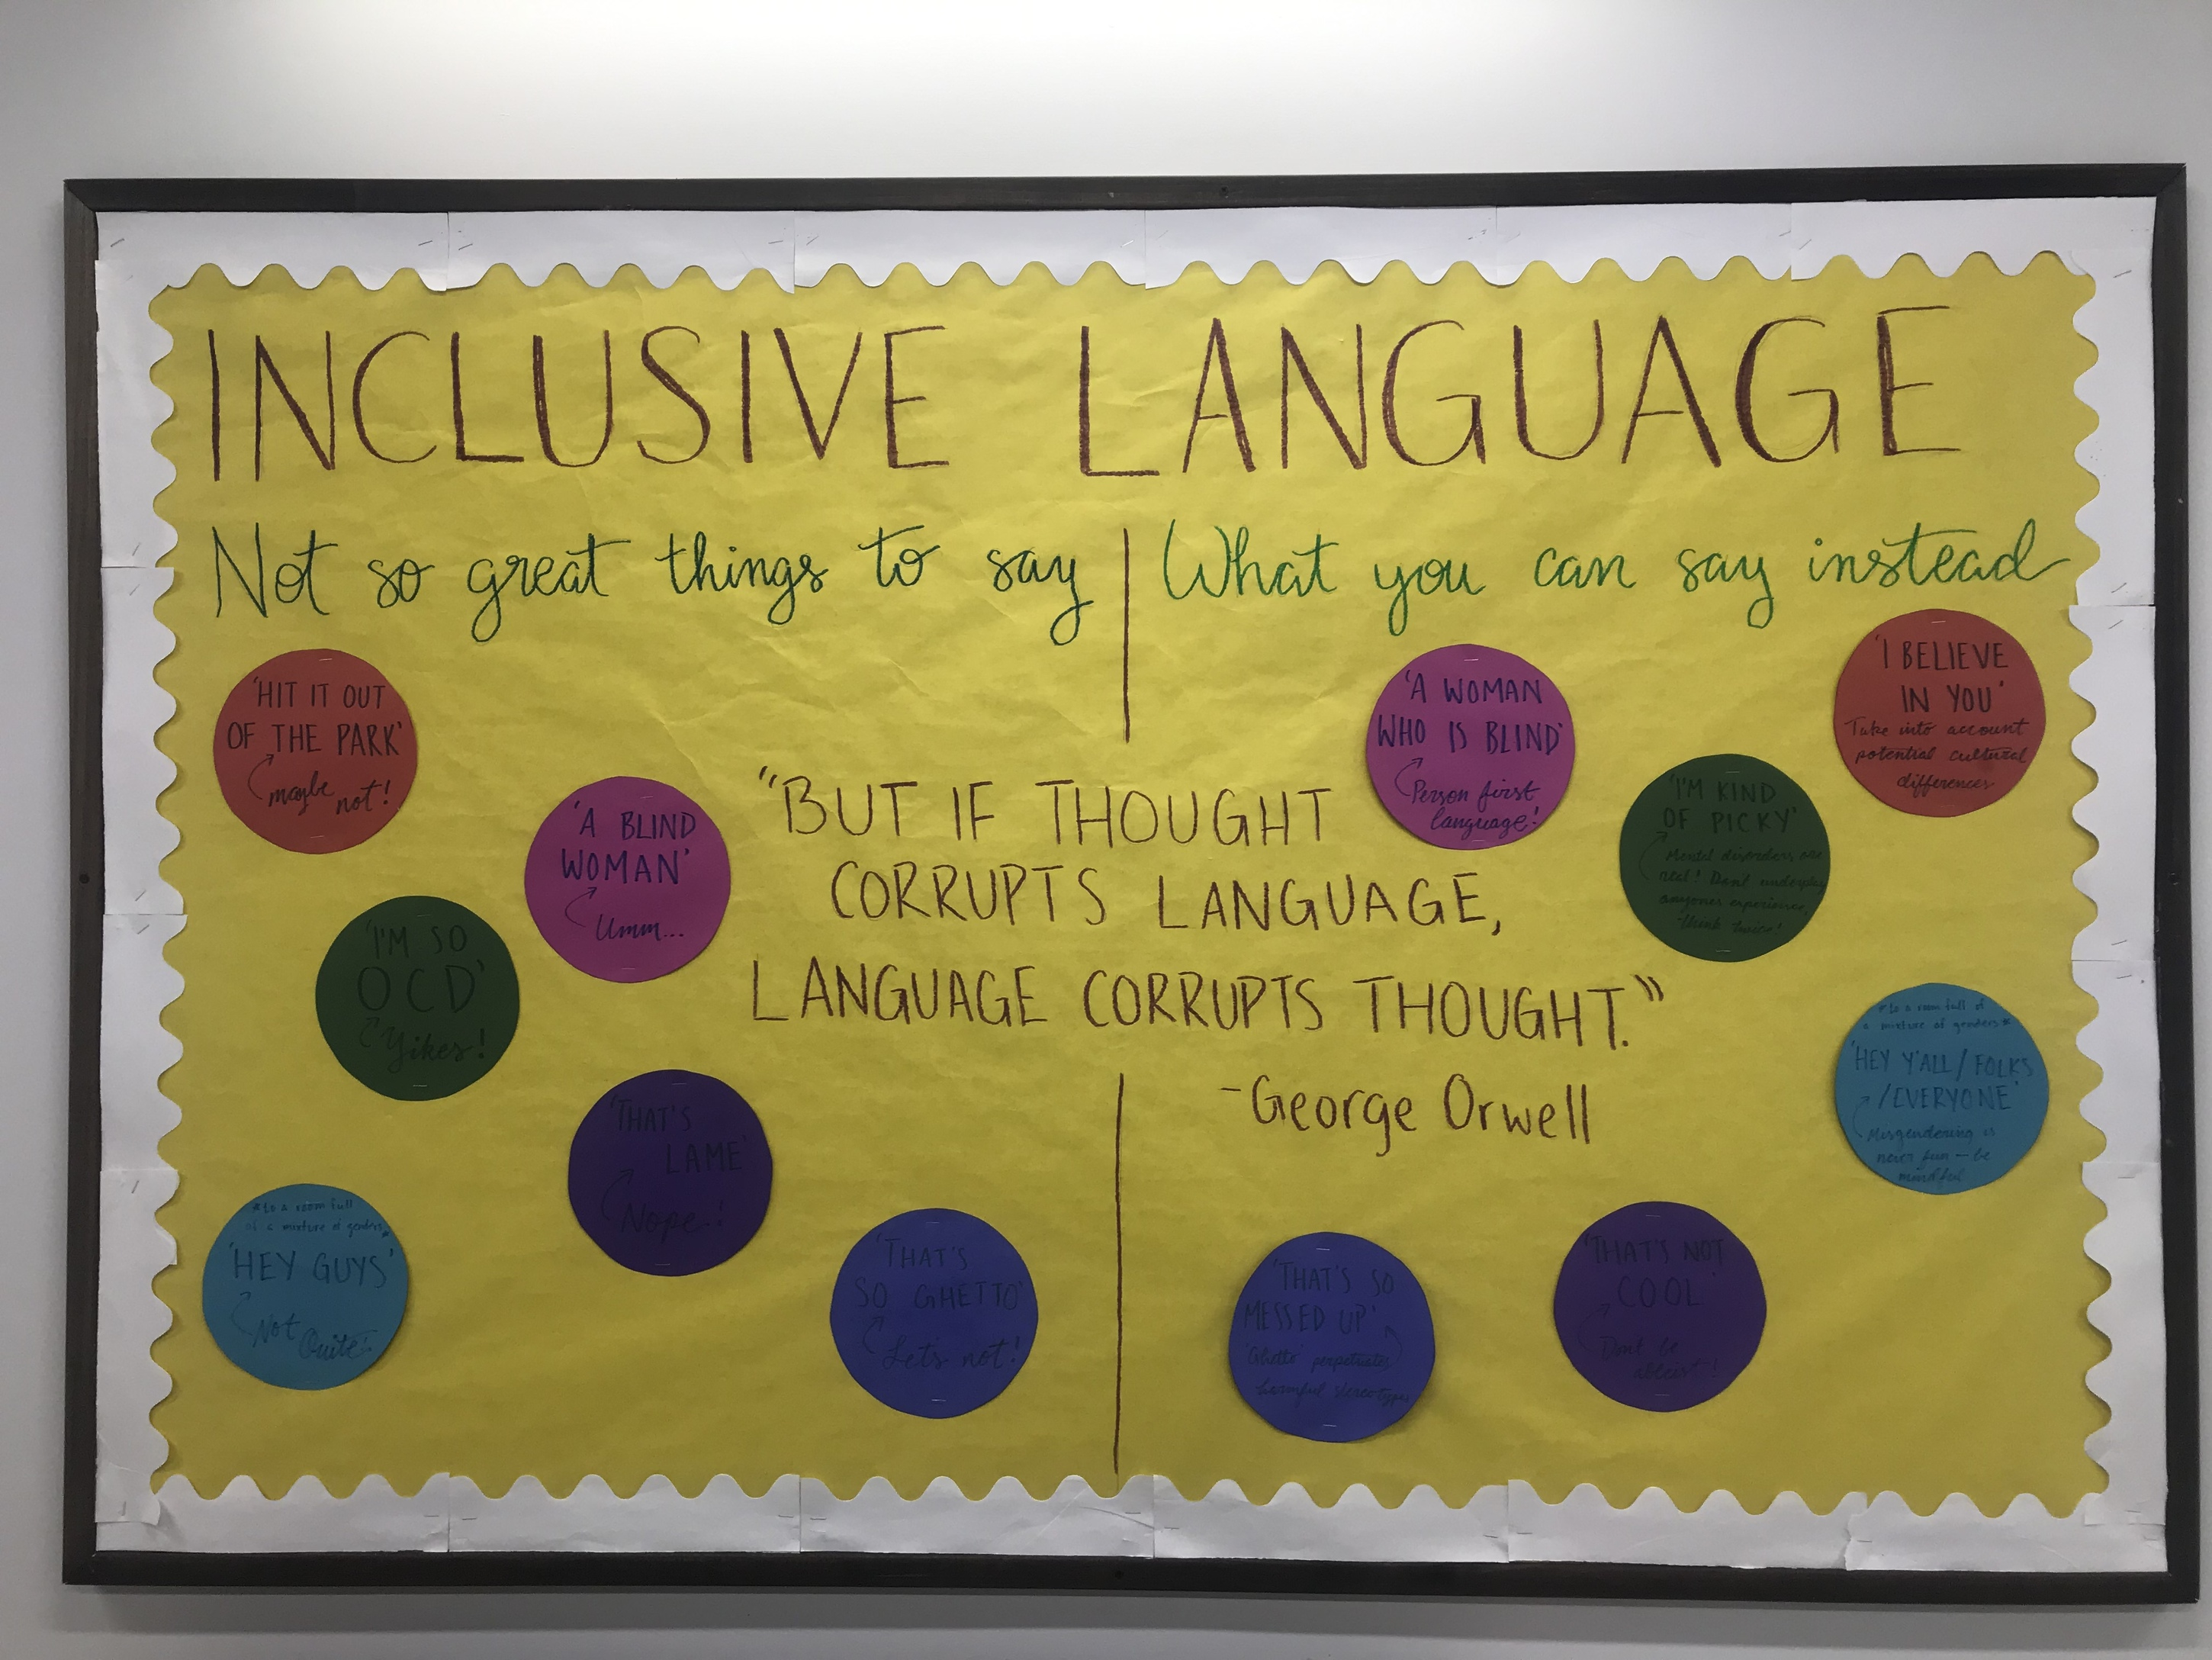 September 2019 Runner-Up Bulletin Board by Sana R.The initiative is a bulletin board which features harmful phrases and phrases which residents could say instead. For example, 'I'm so OCD' could be replaced with 'I'm kind of picky'